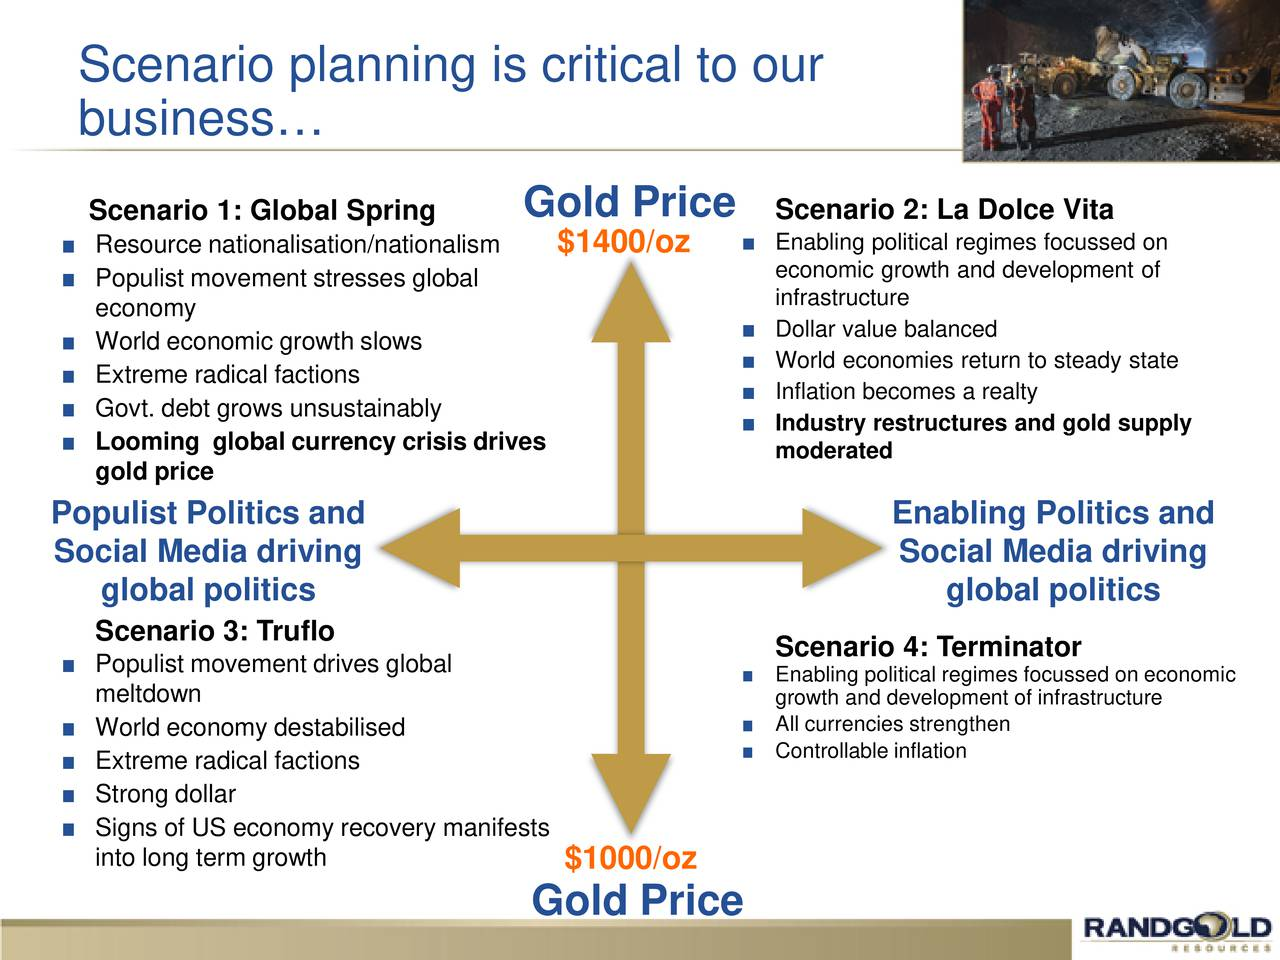 business Scenario 1: Global Spring Gold Price Scenario 2: La Dolce Vita Resource nationalisation/nationalism$1400/oz Enabling political regimes focussed on Populist movement stresses global economic growth and development of infrastructure economy Dollar value balanced World economic growth slows World economies return to steady state Extreme radical factions Govt. debt grows unsustainably Inflation becomes a realty Looming global currency crisis drives Industry restructures and gold supply gold price moderated Populist Politics and Enabling Politics and Social Media driving Social Media driving global politics global politics Scenario 3: Truflo Scenario 4: Terminator Populist movement drives global Enabling political regimes focussed on economic meltdown growth and development of infrastructure World economy destabilised All currencies strengthen Extreme radical factions Controllable inflation Strong dollar Signs of US economy recovery manifests into long term growth $1000/oz Gold Price